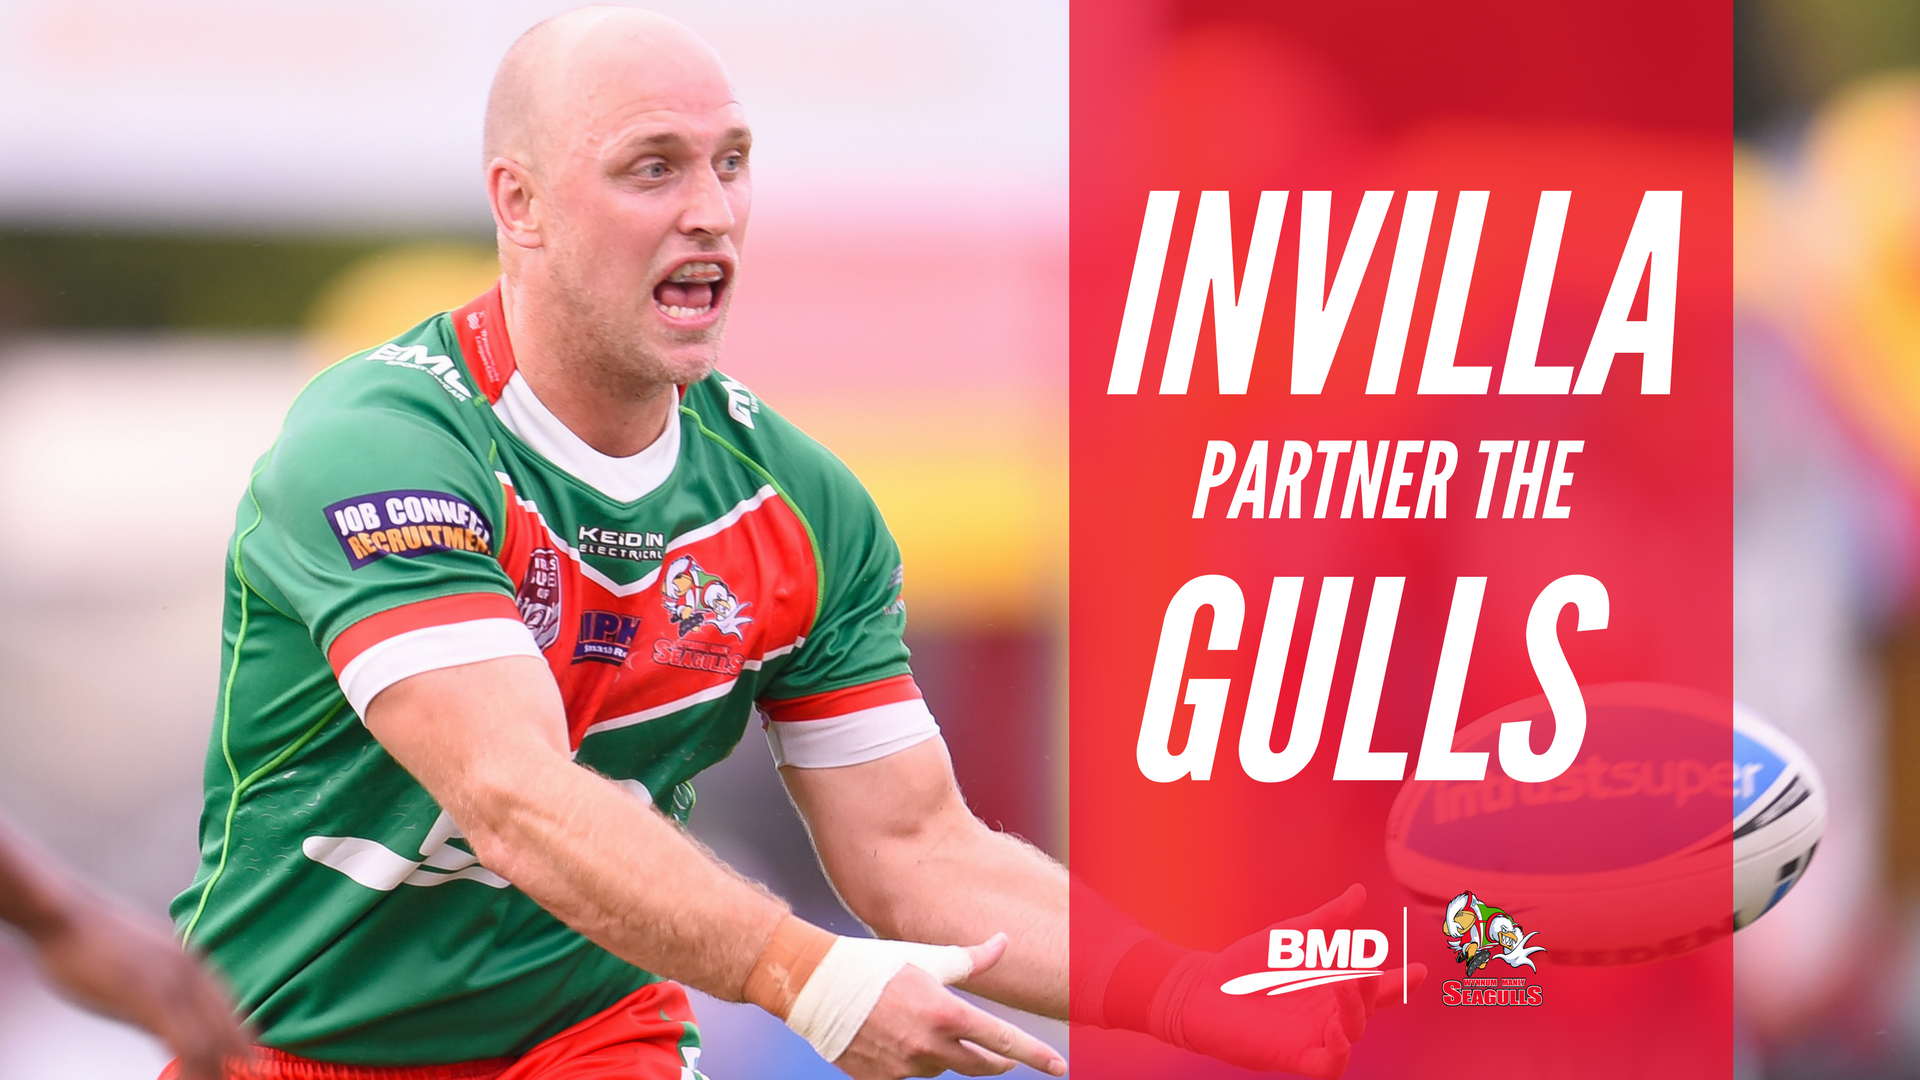 Invilla Partner with Wynnum Manly